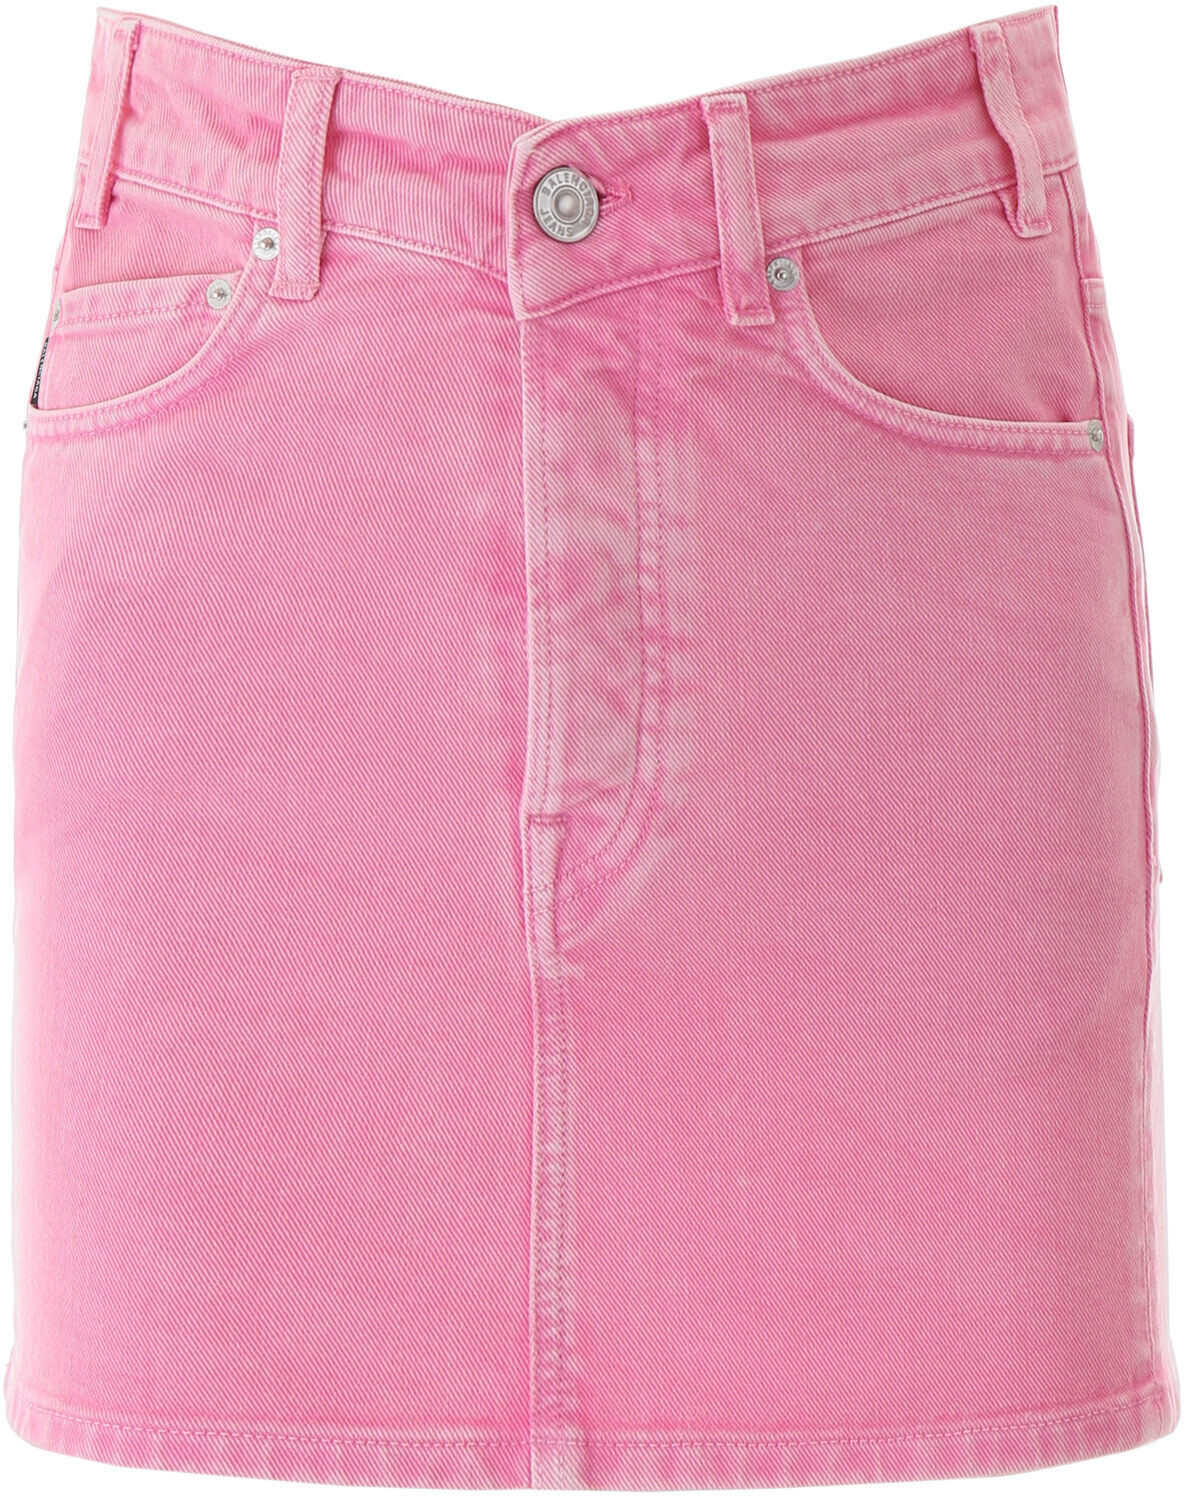 Balenciaga Denim Mini Skirt VINTAGE PINK